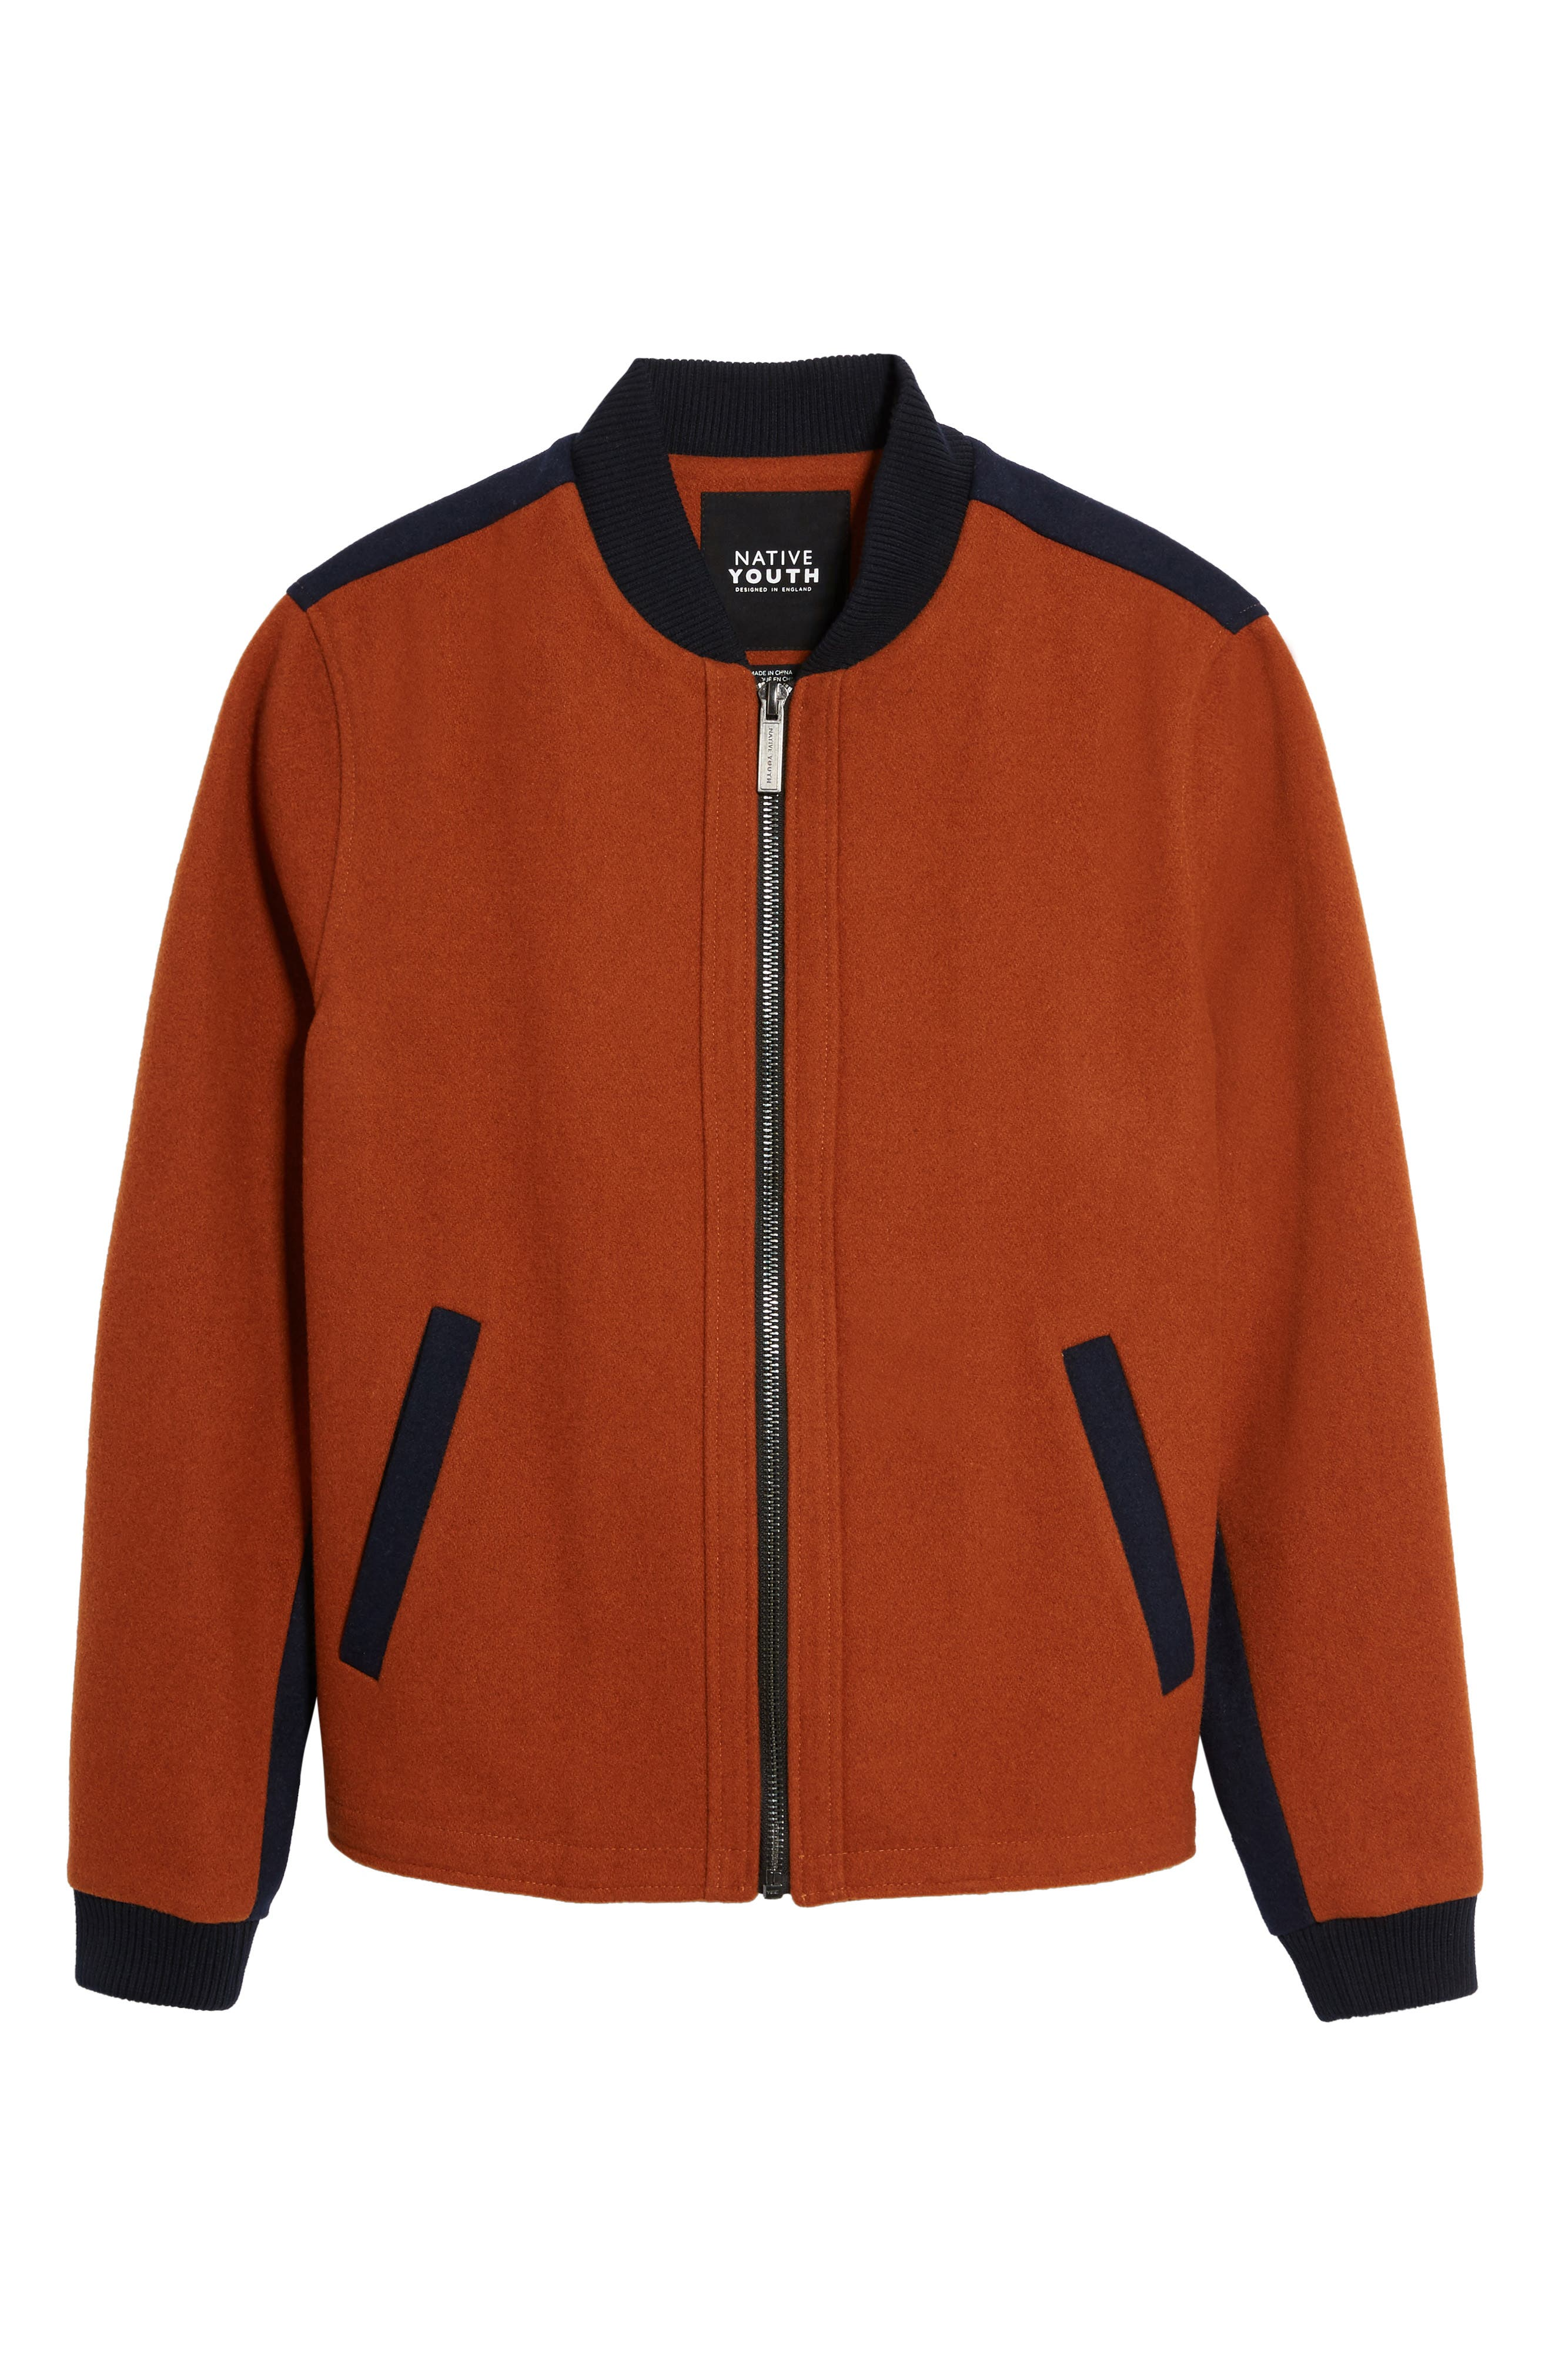 Maldon Bomber Jacket,                             Alternate thumbnail 5, color,                             800